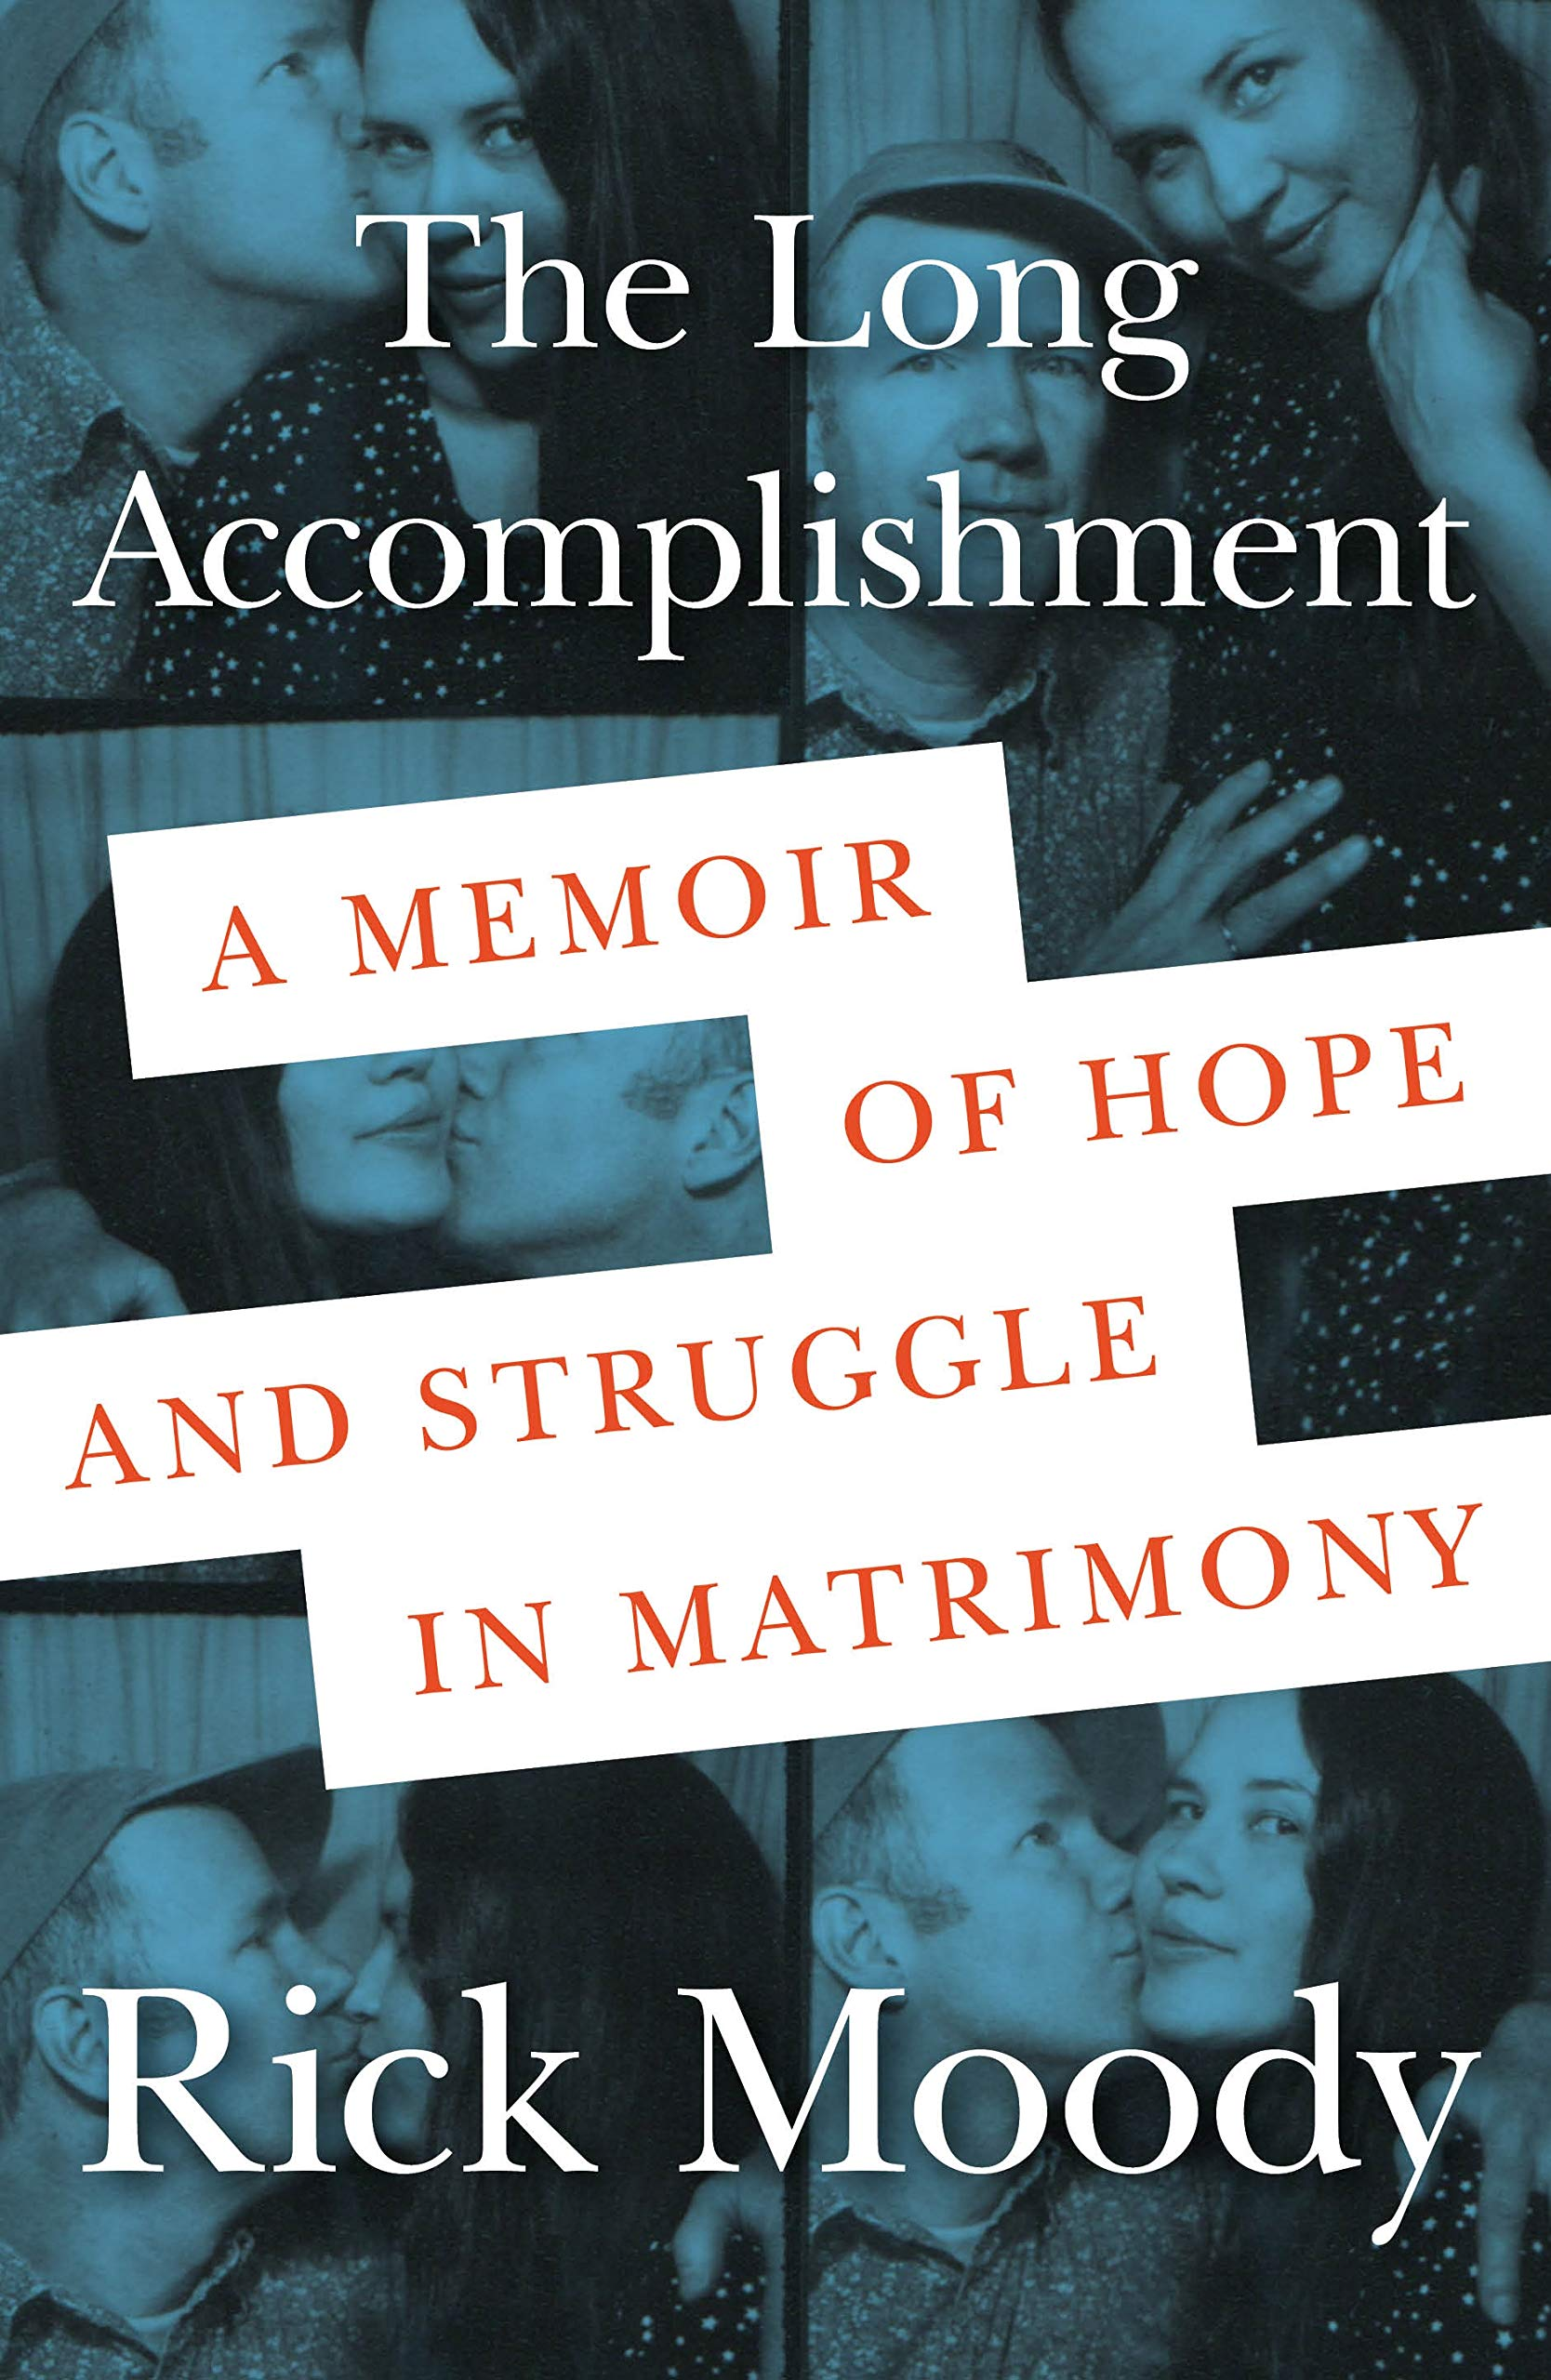 The Long Accomplishment: A Memoir of Hope and Struggle in